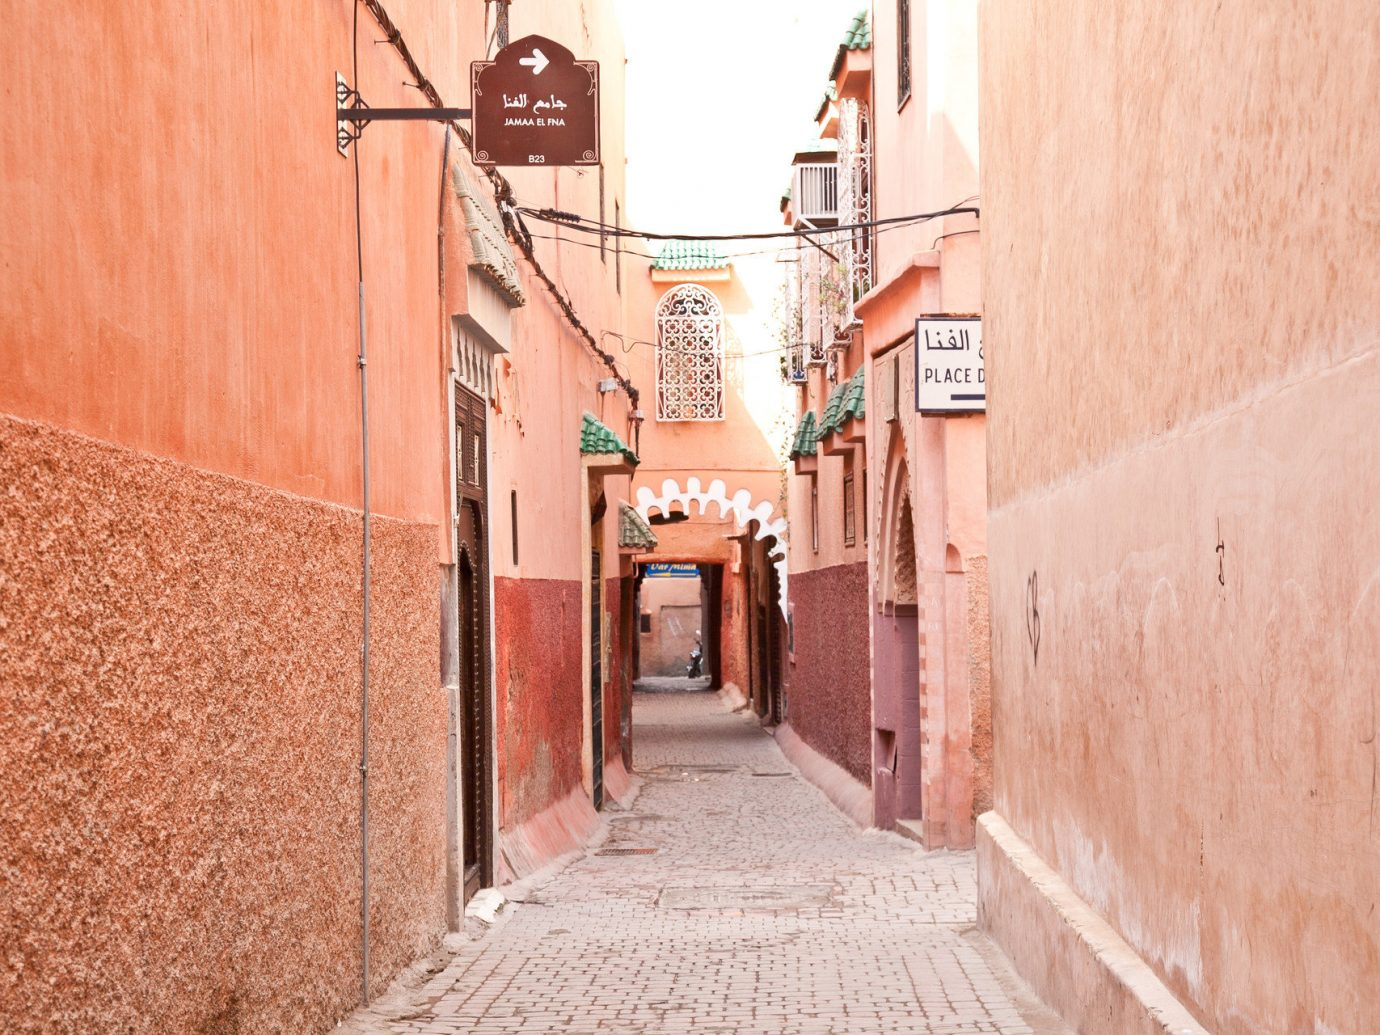 City city streets streets sunlight Trip Ideas building color road alley red street lane Town wall urban area house Architecture infrastructure wood brick ancient history stone